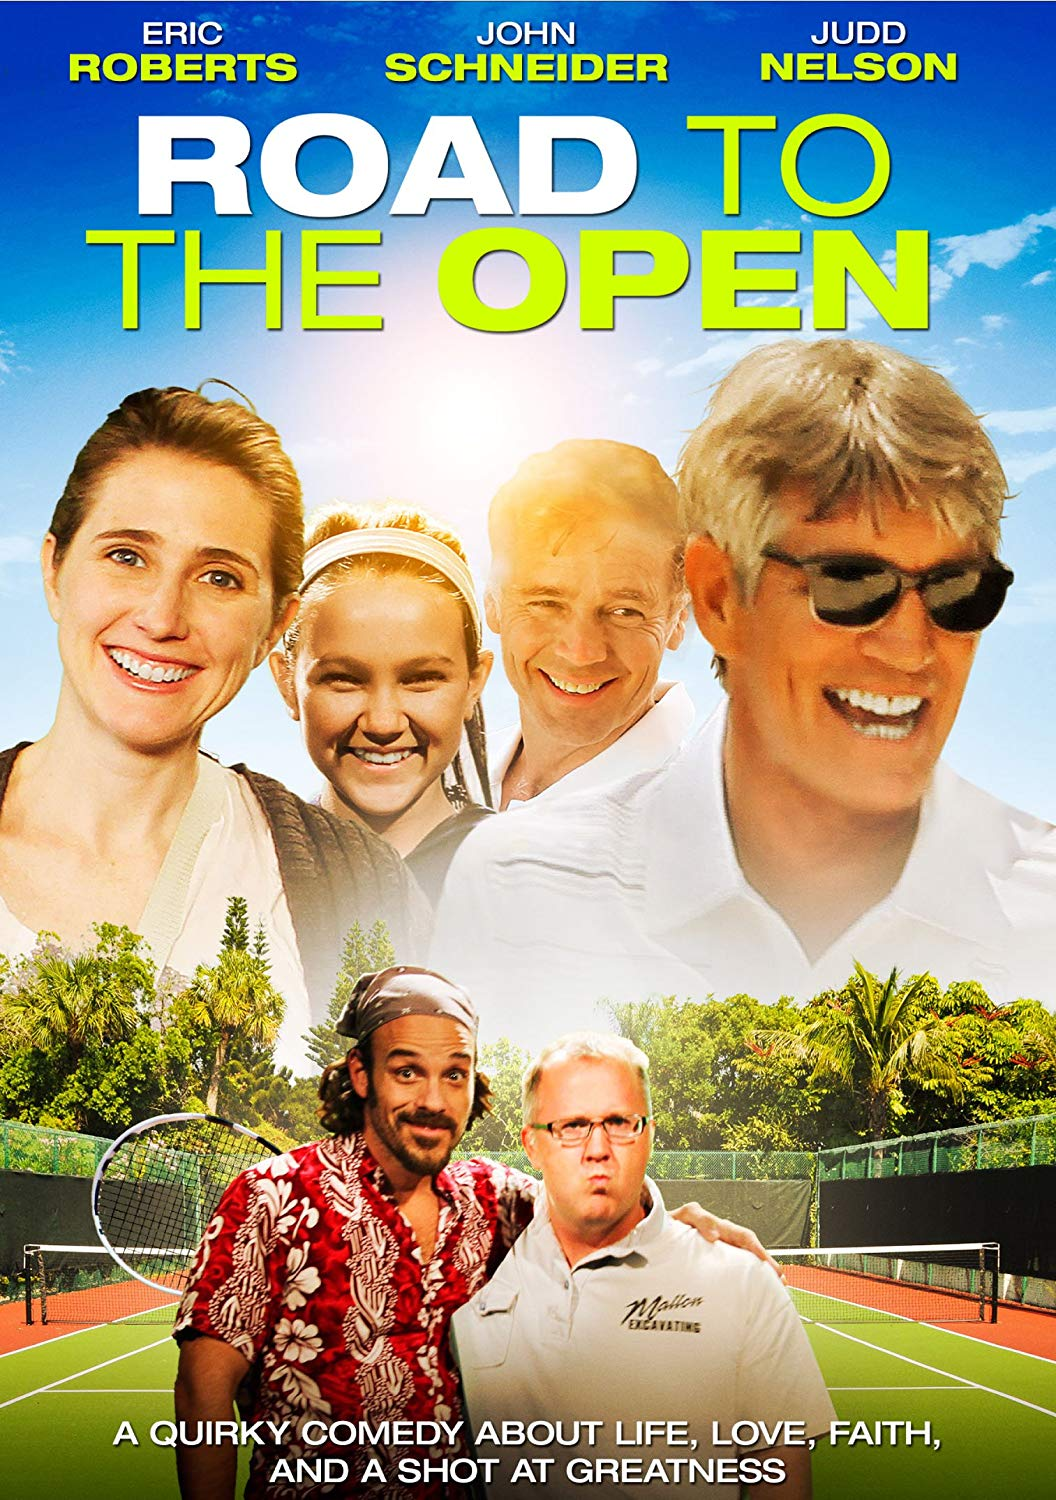 Road to the Open - A Quirky Comedy About Life, Love, Faith and A Shot at Greatness (CBA version)